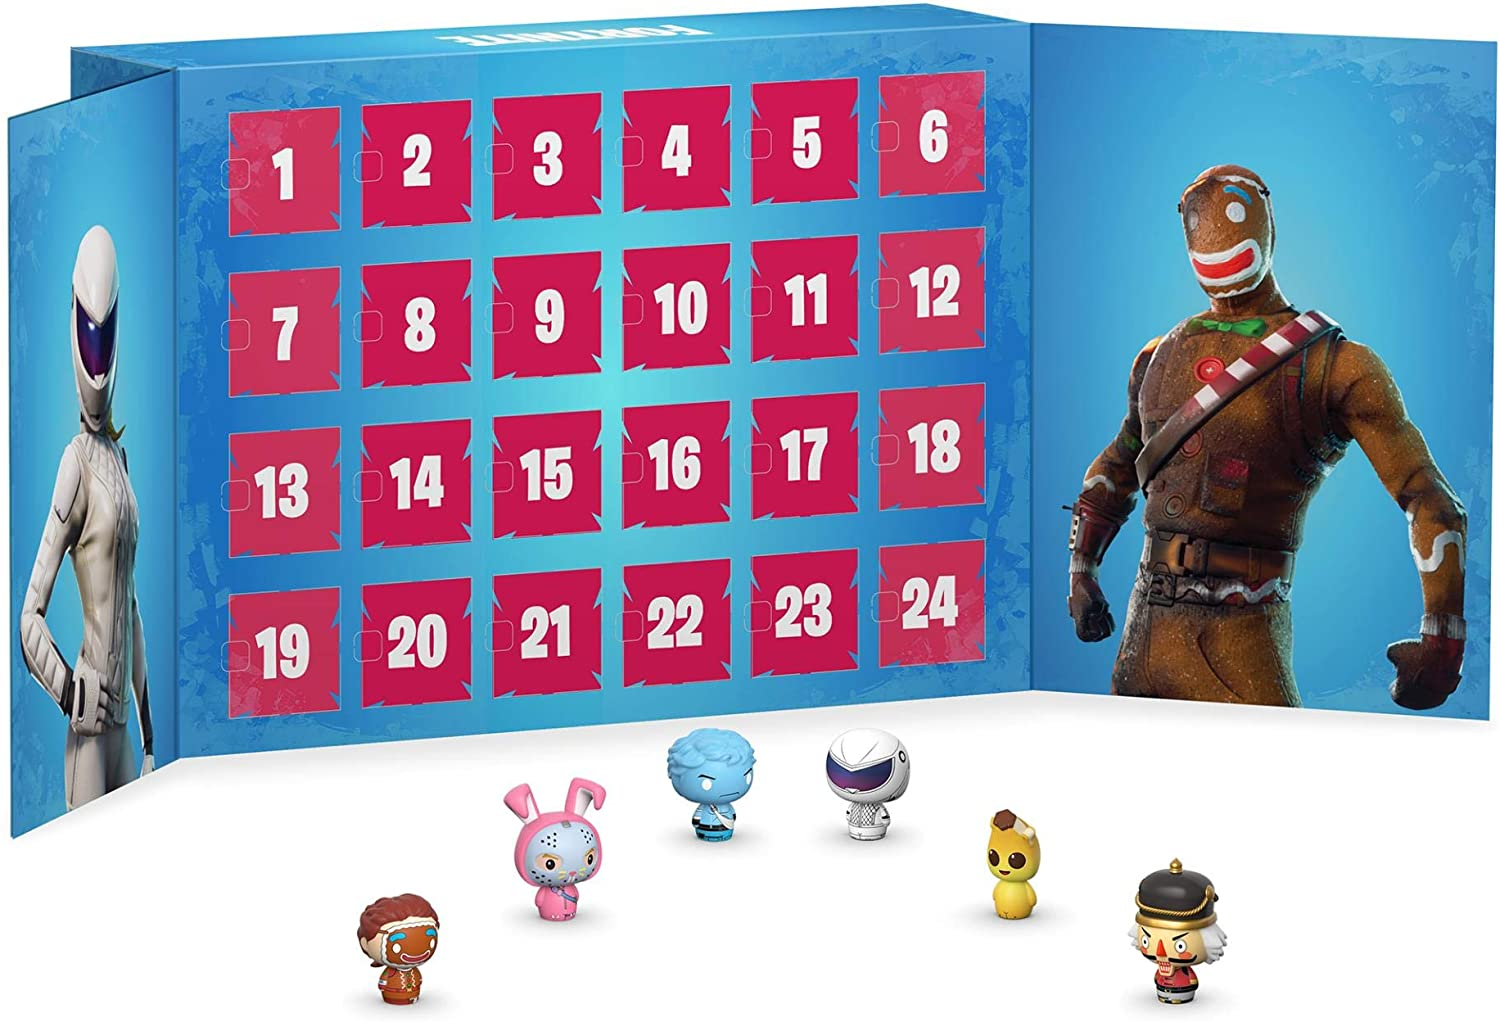 Funko Pop Advent Calendar: Fortnite Calendario Adviento ...